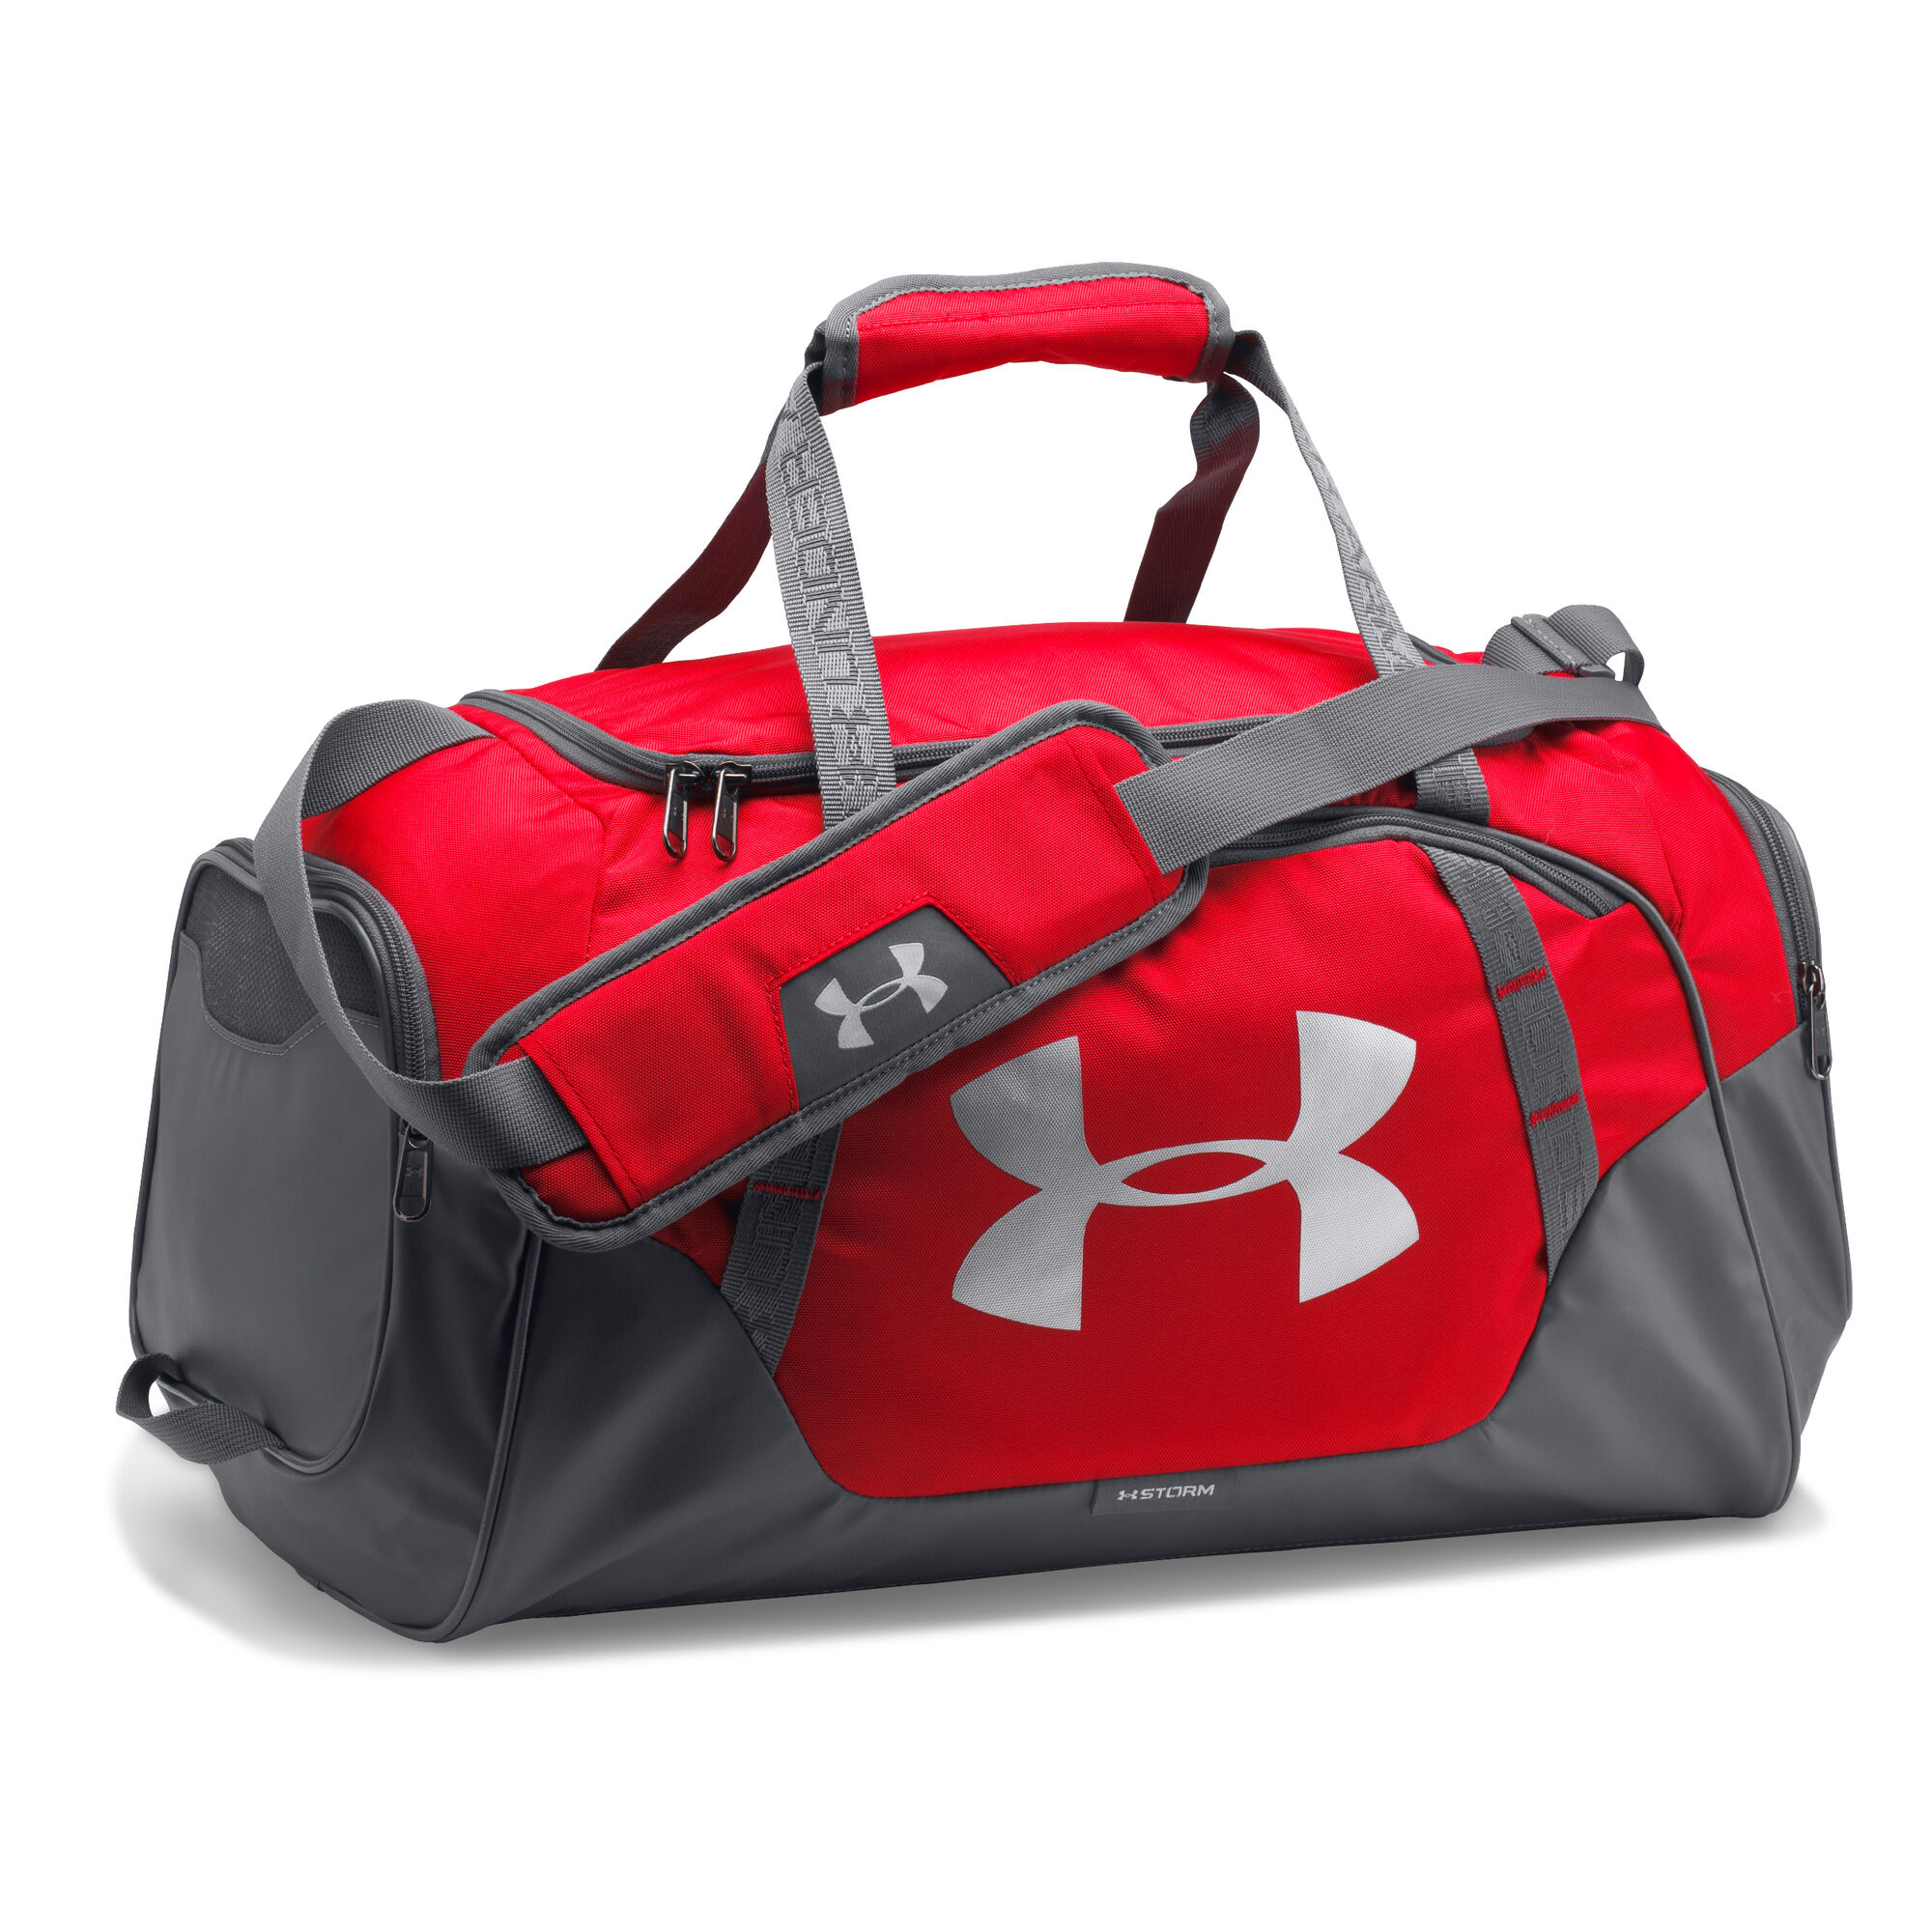 8cddbfaa3aba Under Armour · Under Armour · Under Armour · Under Armour · Under Armour · Under  Armour. Undeniable Duffle 3.0 SM ...